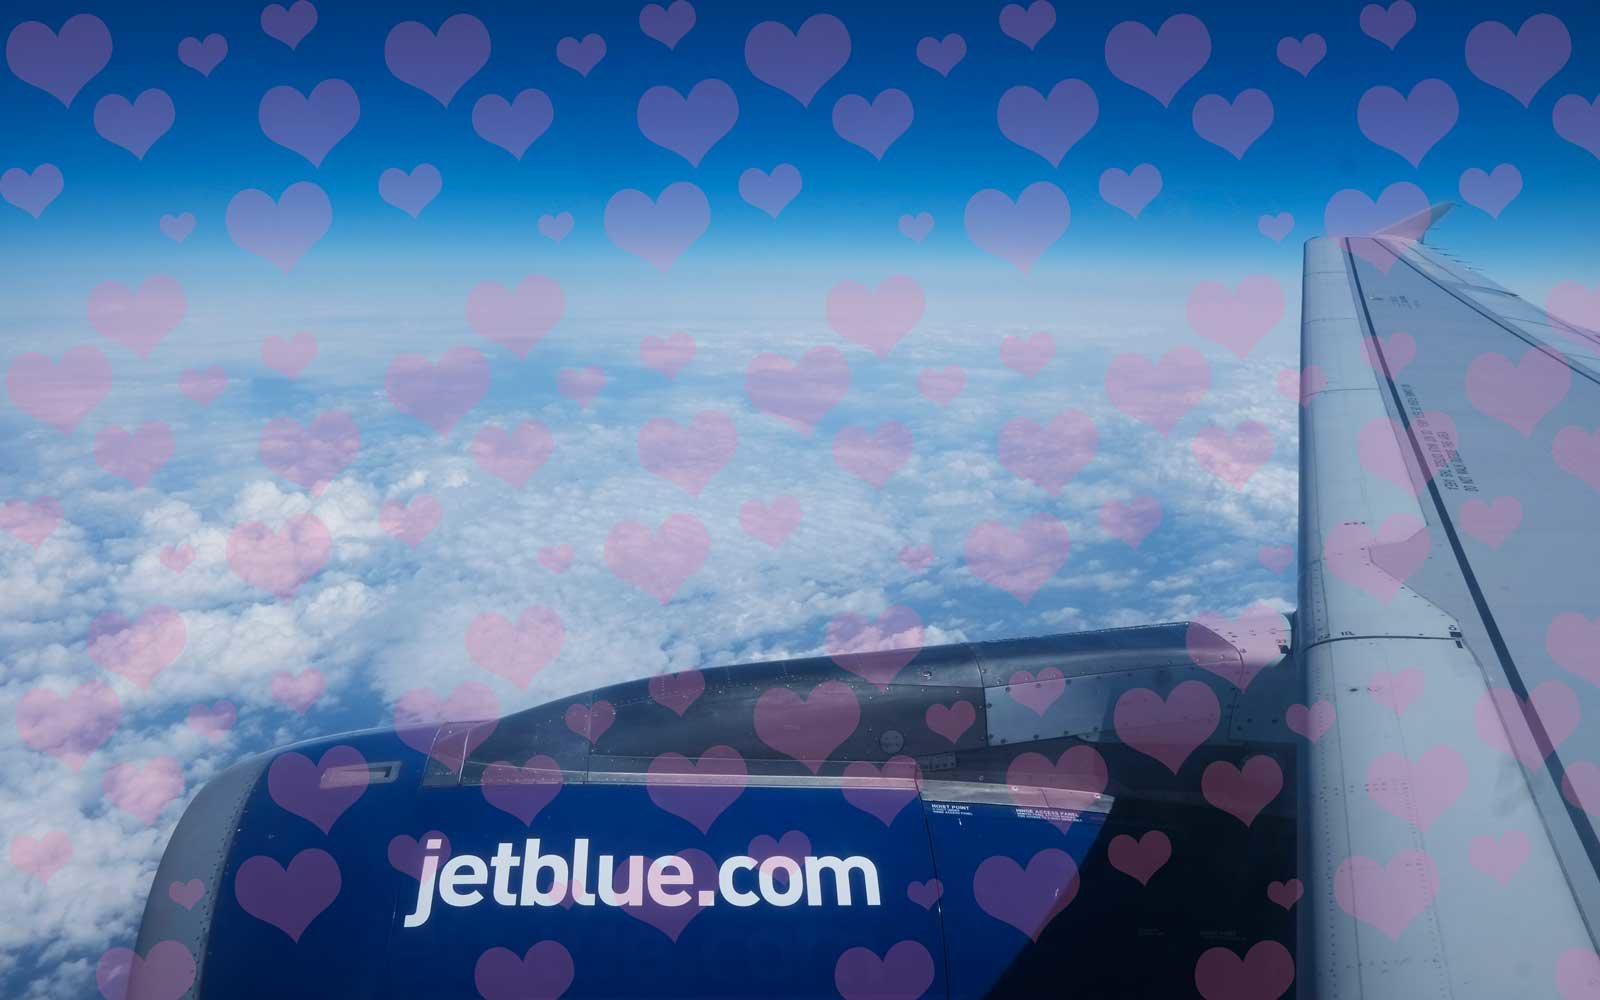 JetBlue Valentine's Day